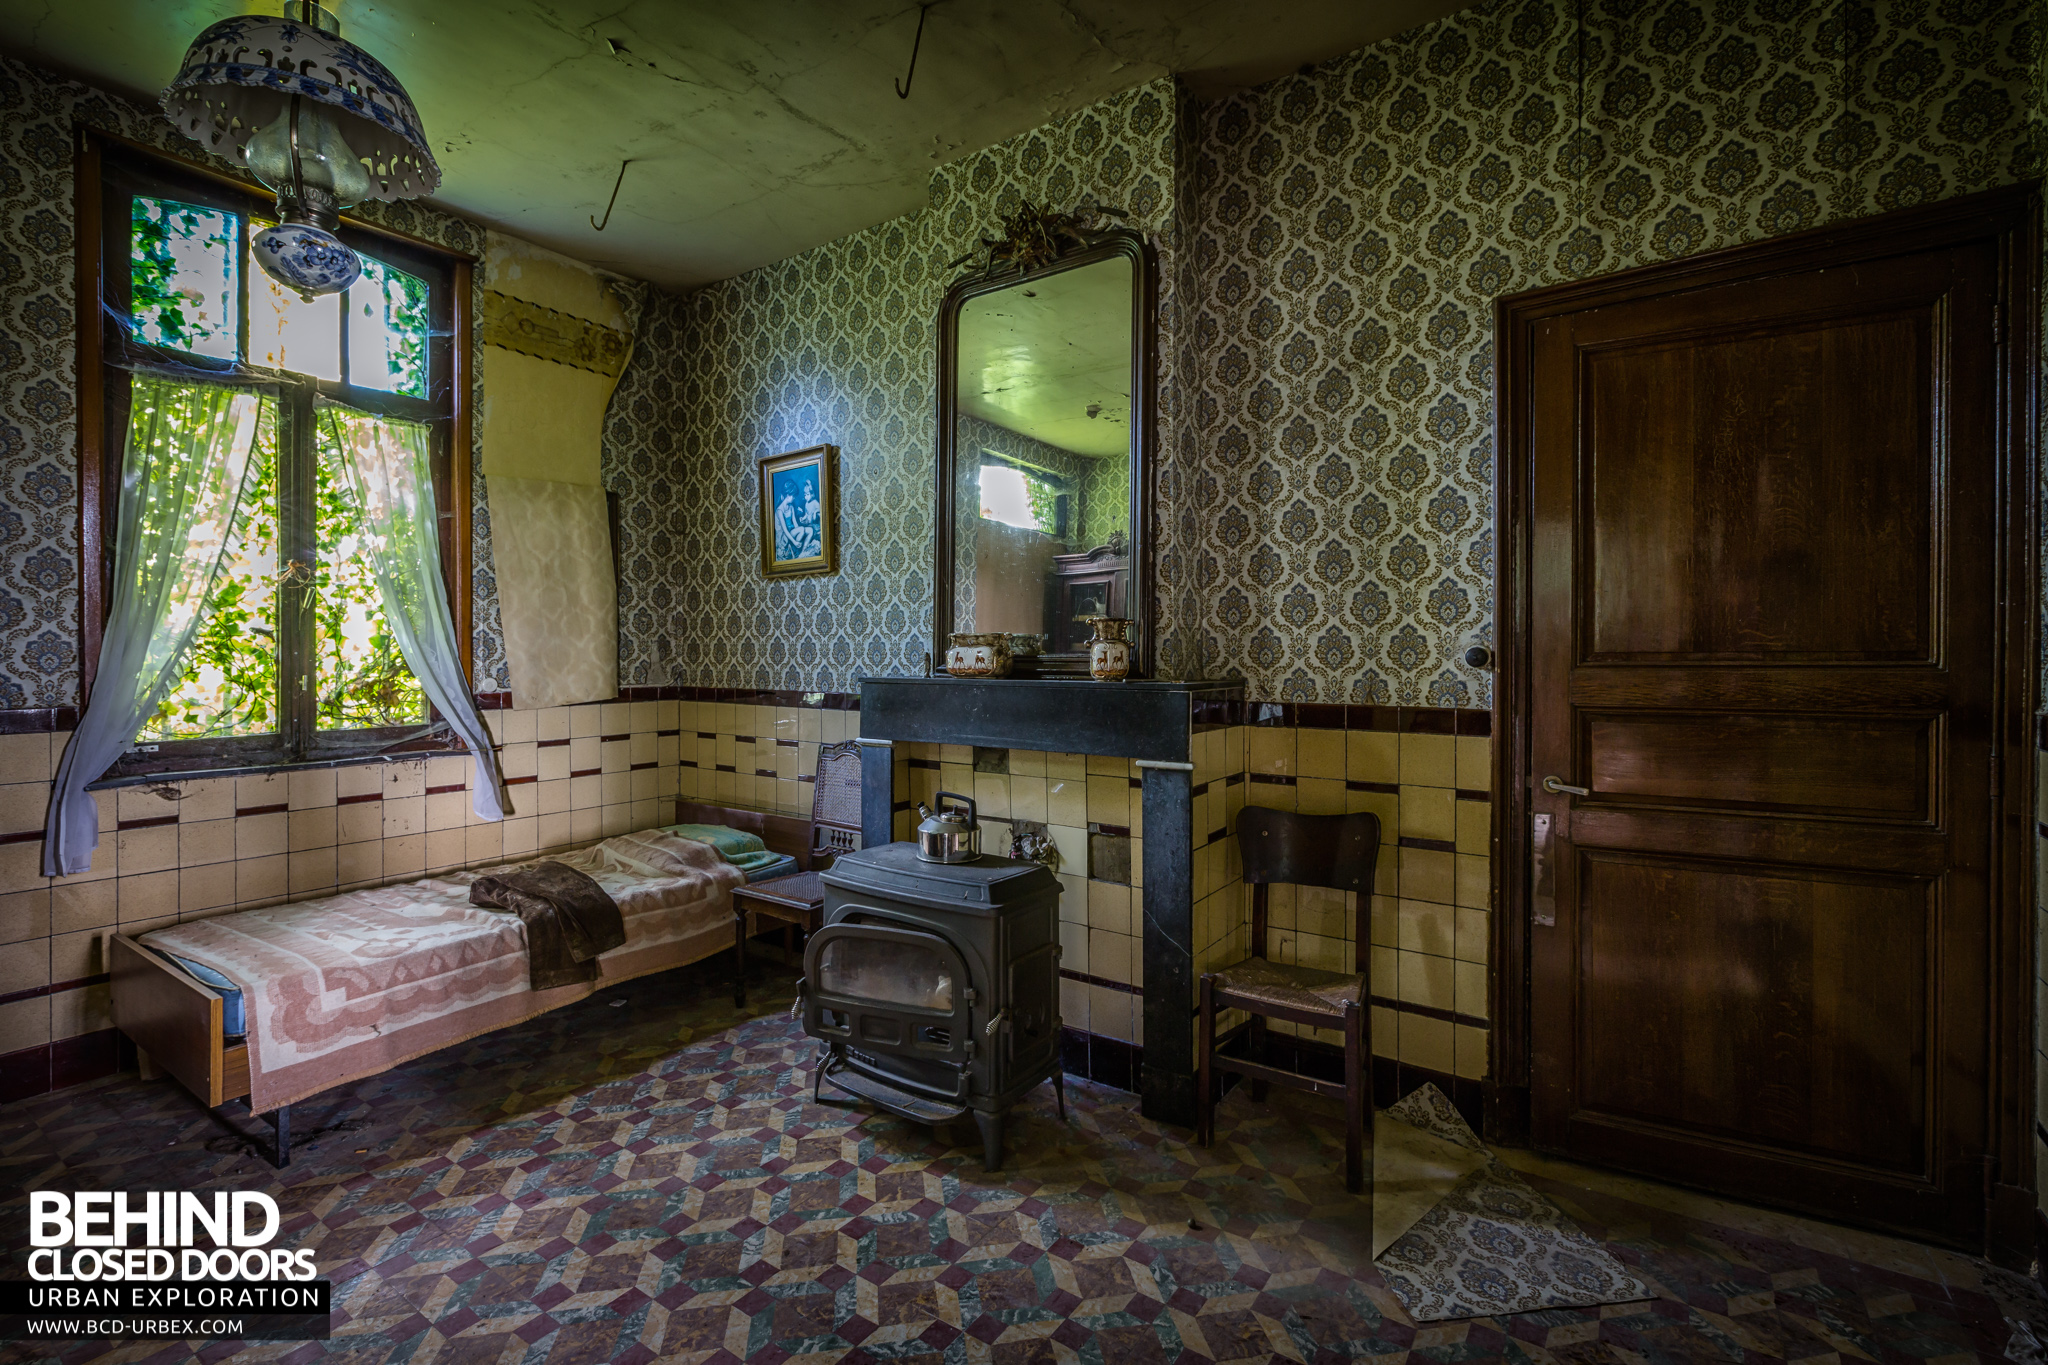 Maison Gustaaf Abandoned House Belgium  Urbex  Behind